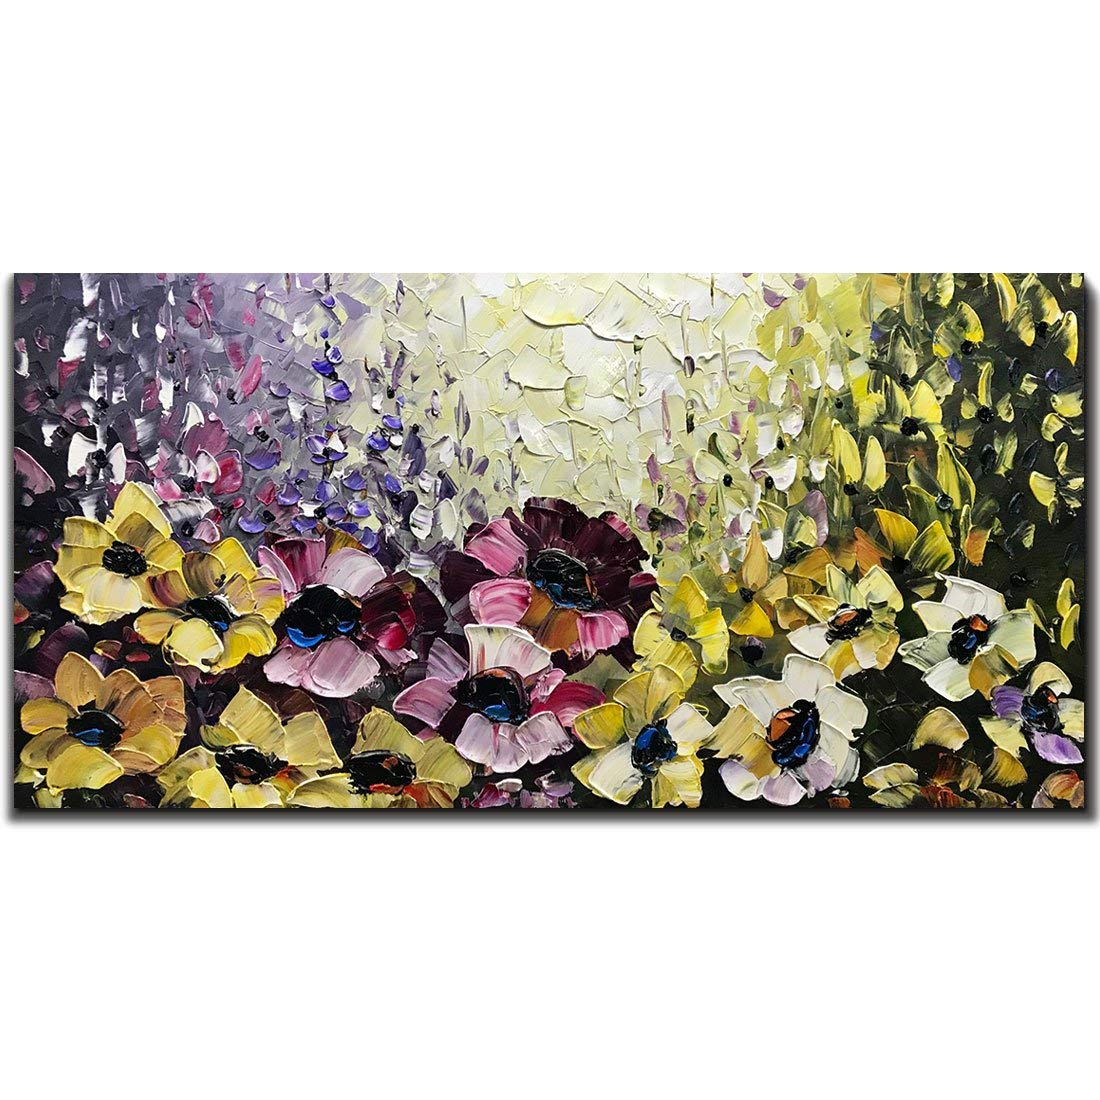 Yotree Paintings, 24x48 Inch Paintings Colorful Flowers Oil Hand Painting Painting 3D Hand-Painted On Canvas Abstract Artwork Art Wood Inside Framed Hanging Wall Decoration Abstract Painting